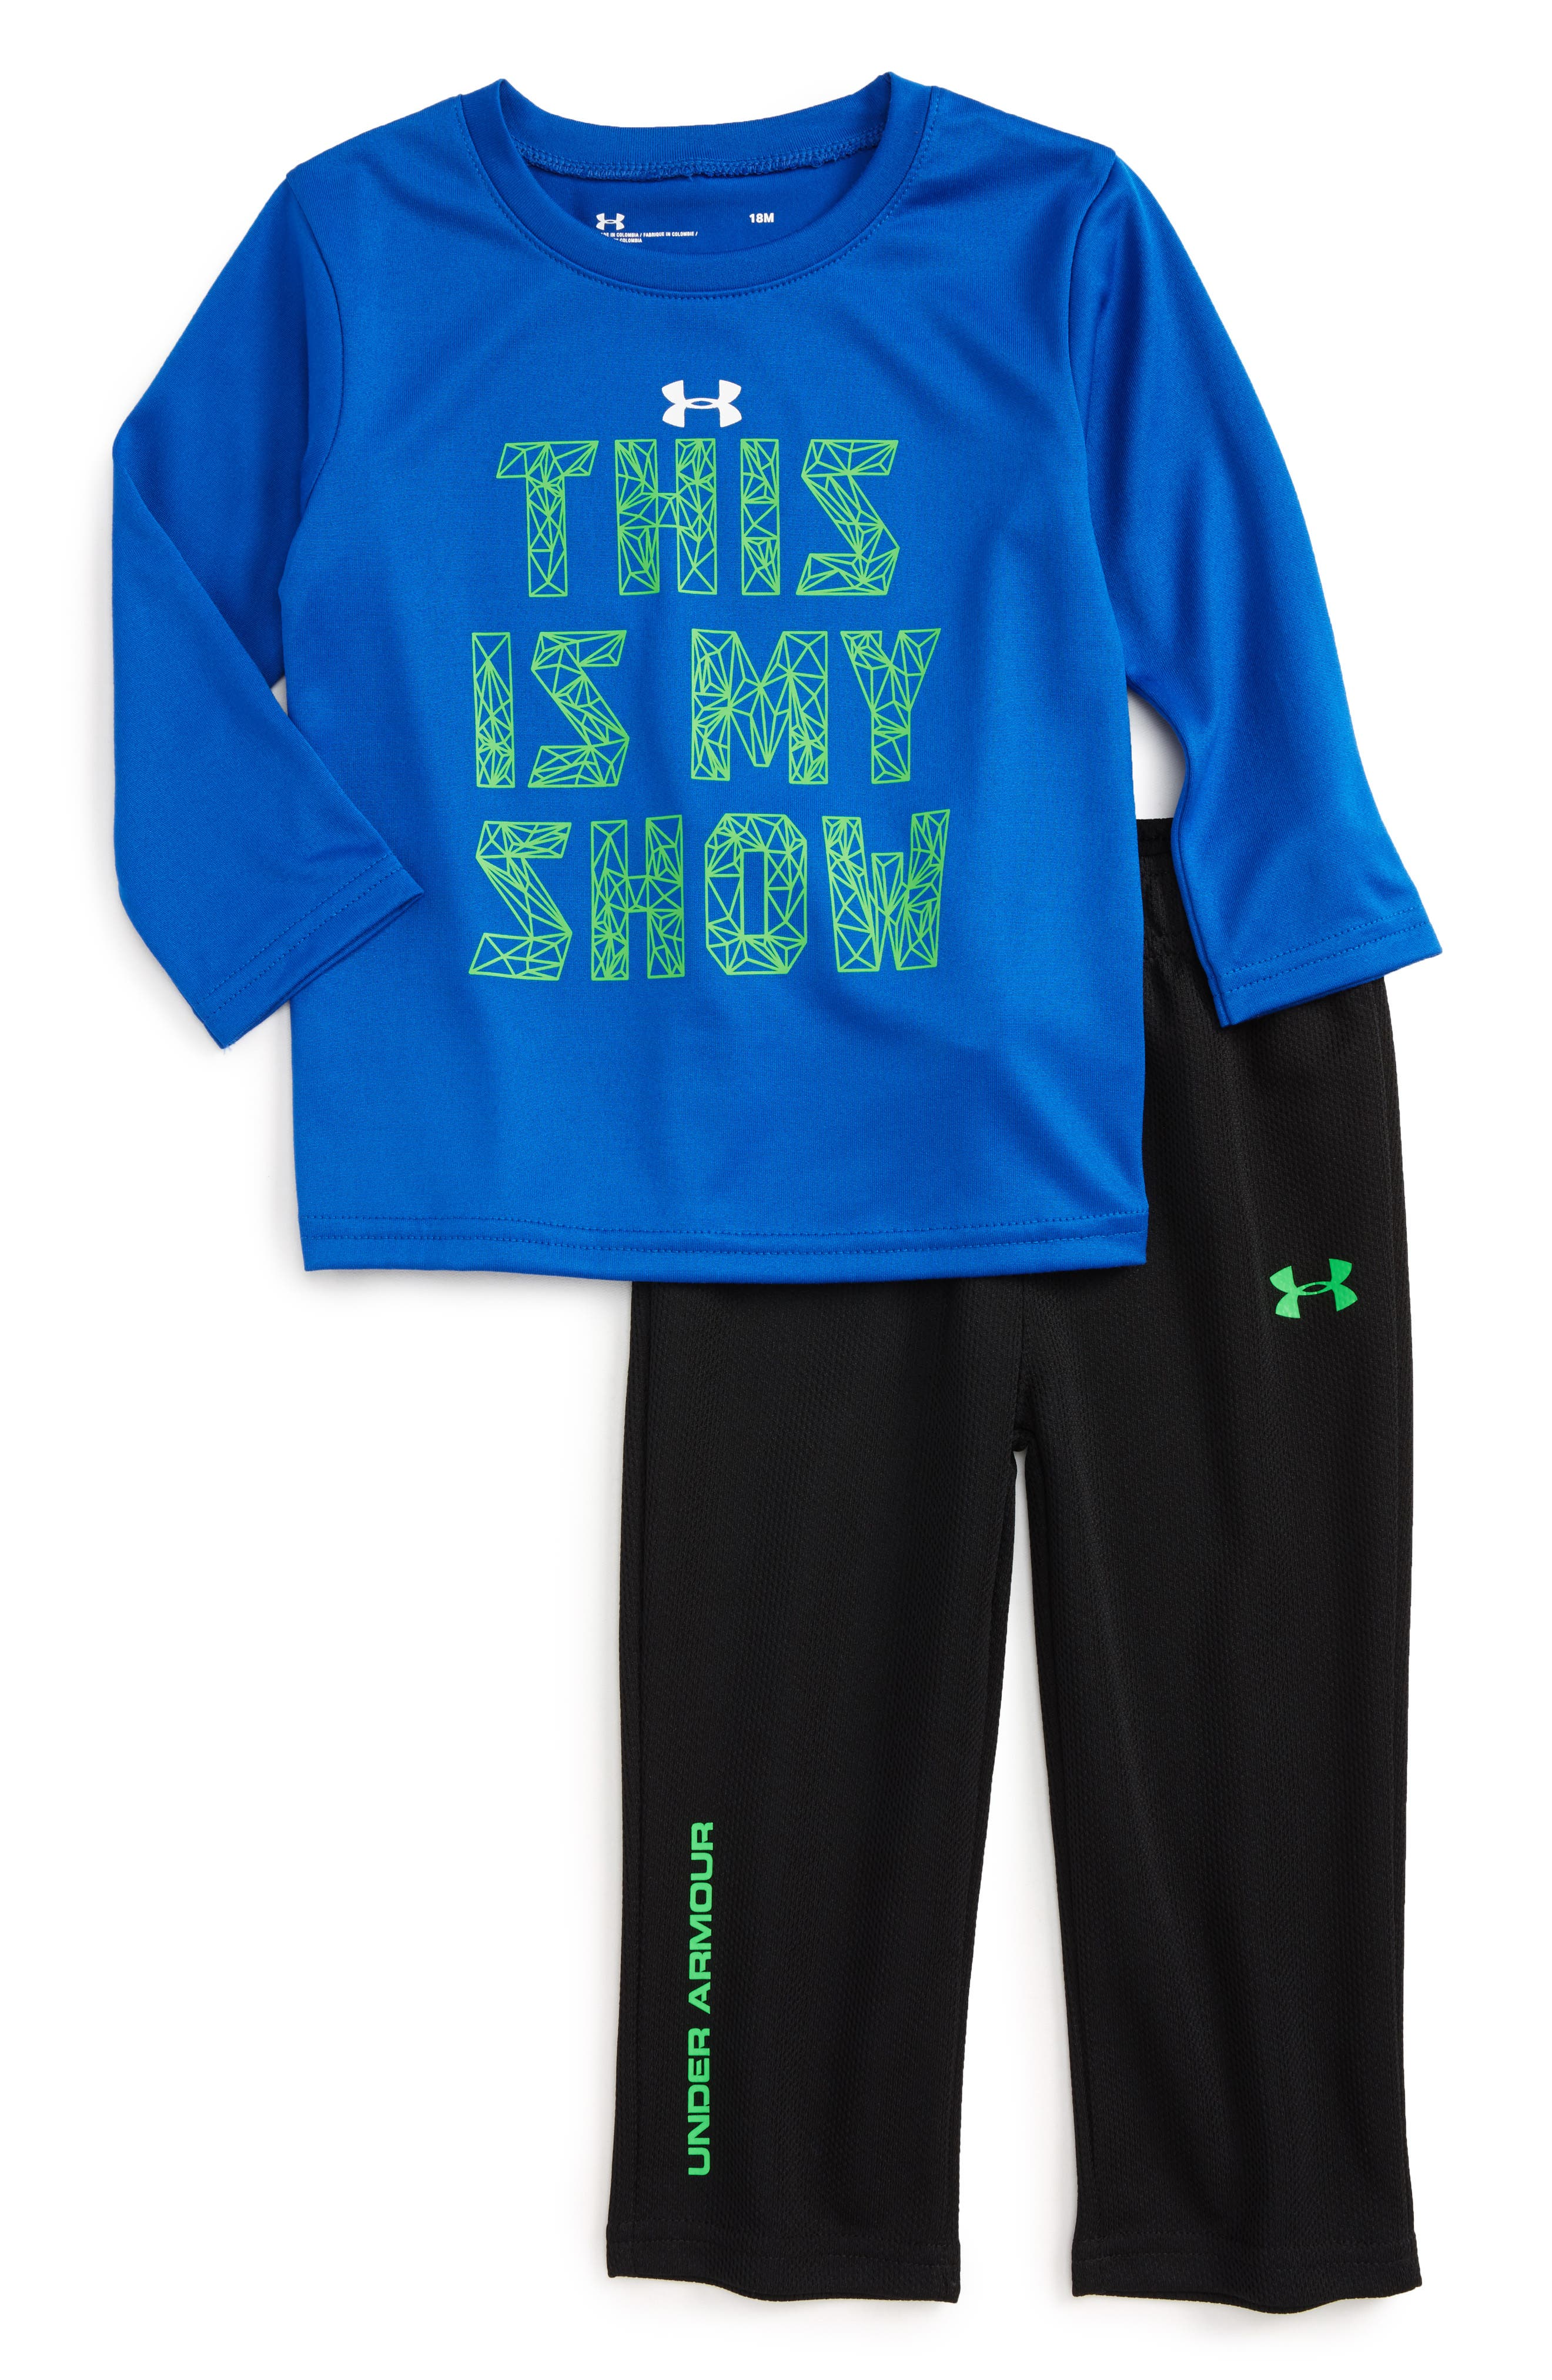 Under Armour This is My Show T-Shirt & Mesh Pants Set (Baby Boys)